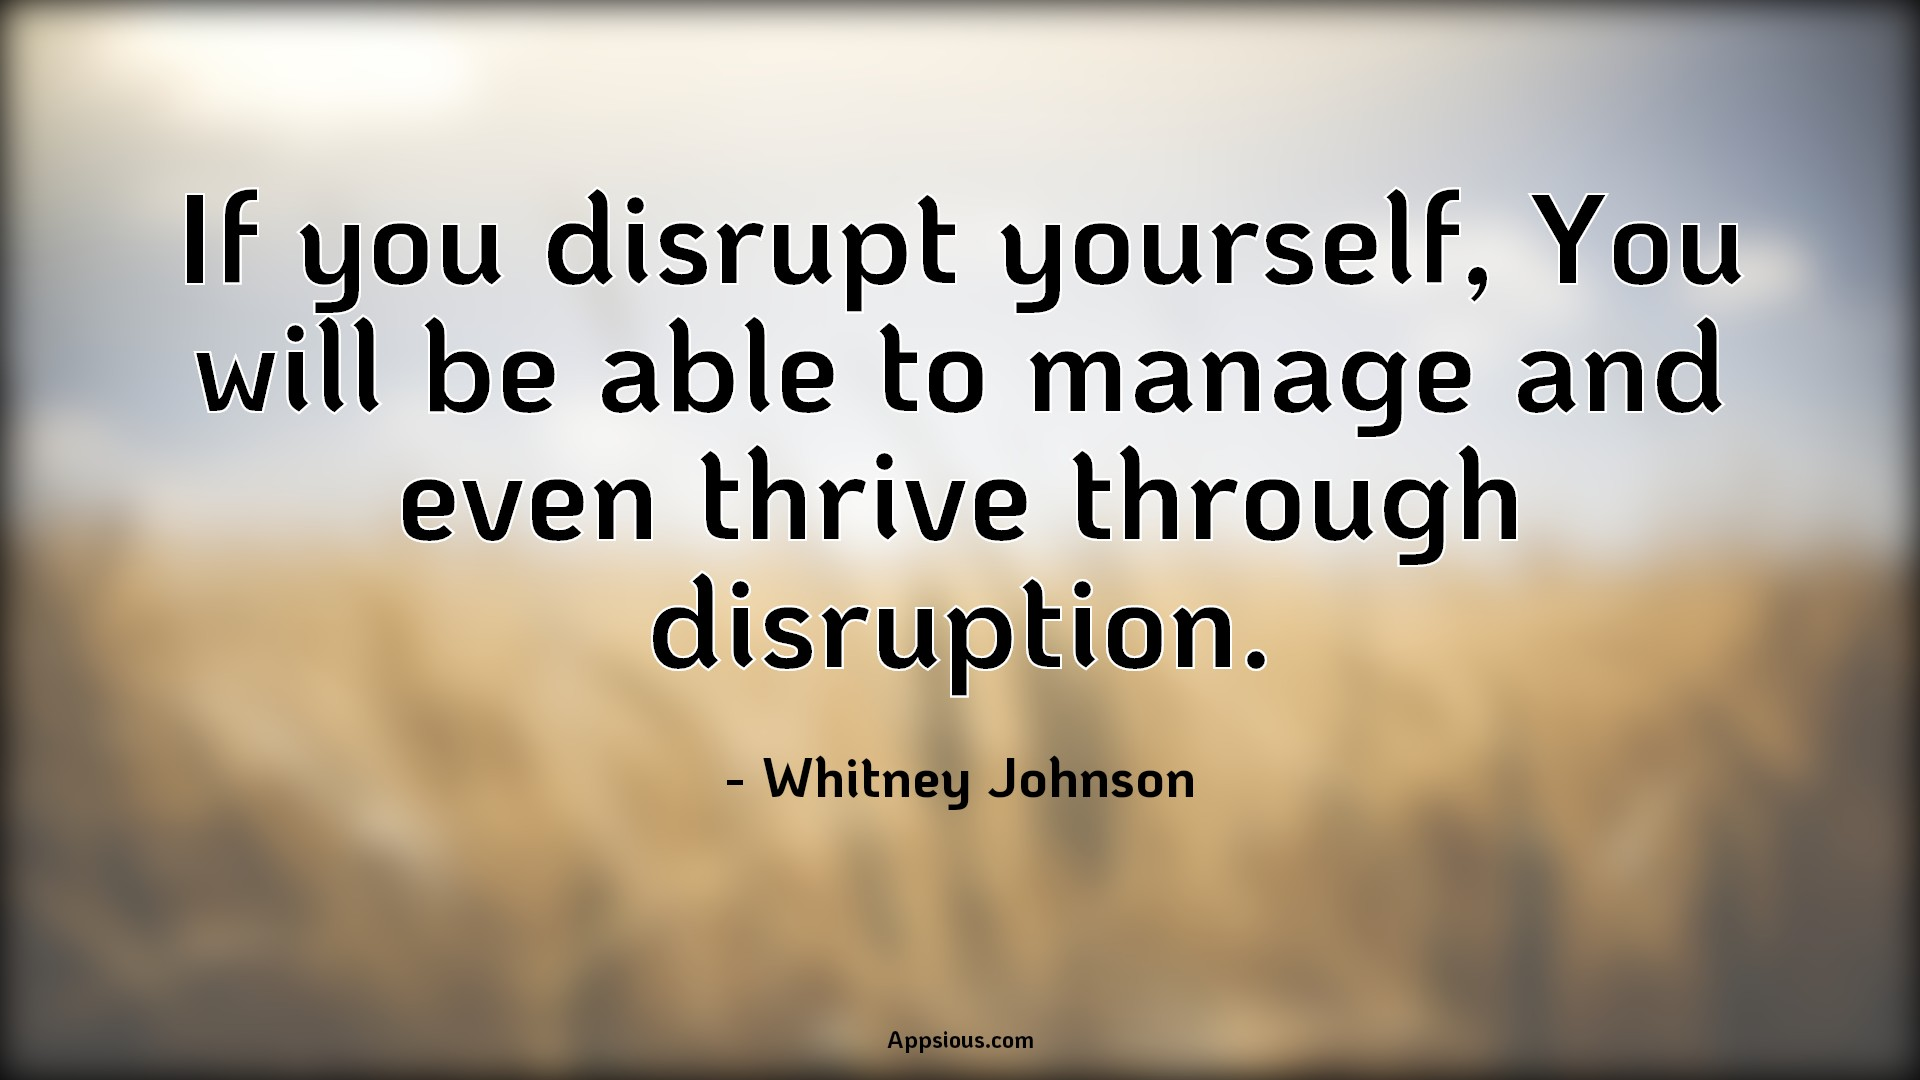 If you disrupt yourself, You will be able to manage and even thrive through disruption.